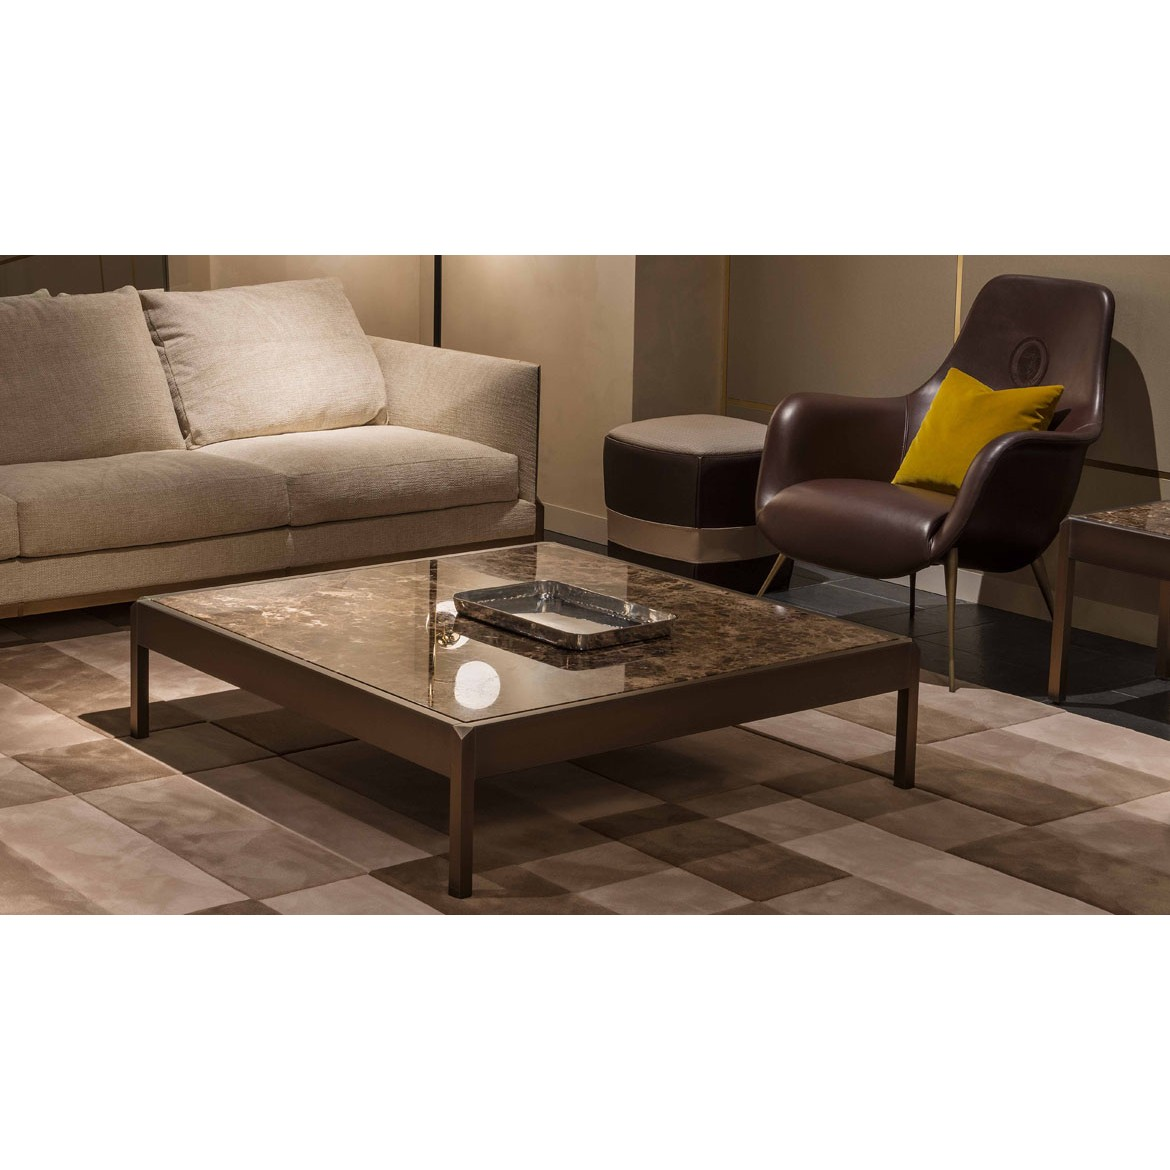 Стол журнальный Band Coffee and Side Tables 3, дизайн Trussardi Casa